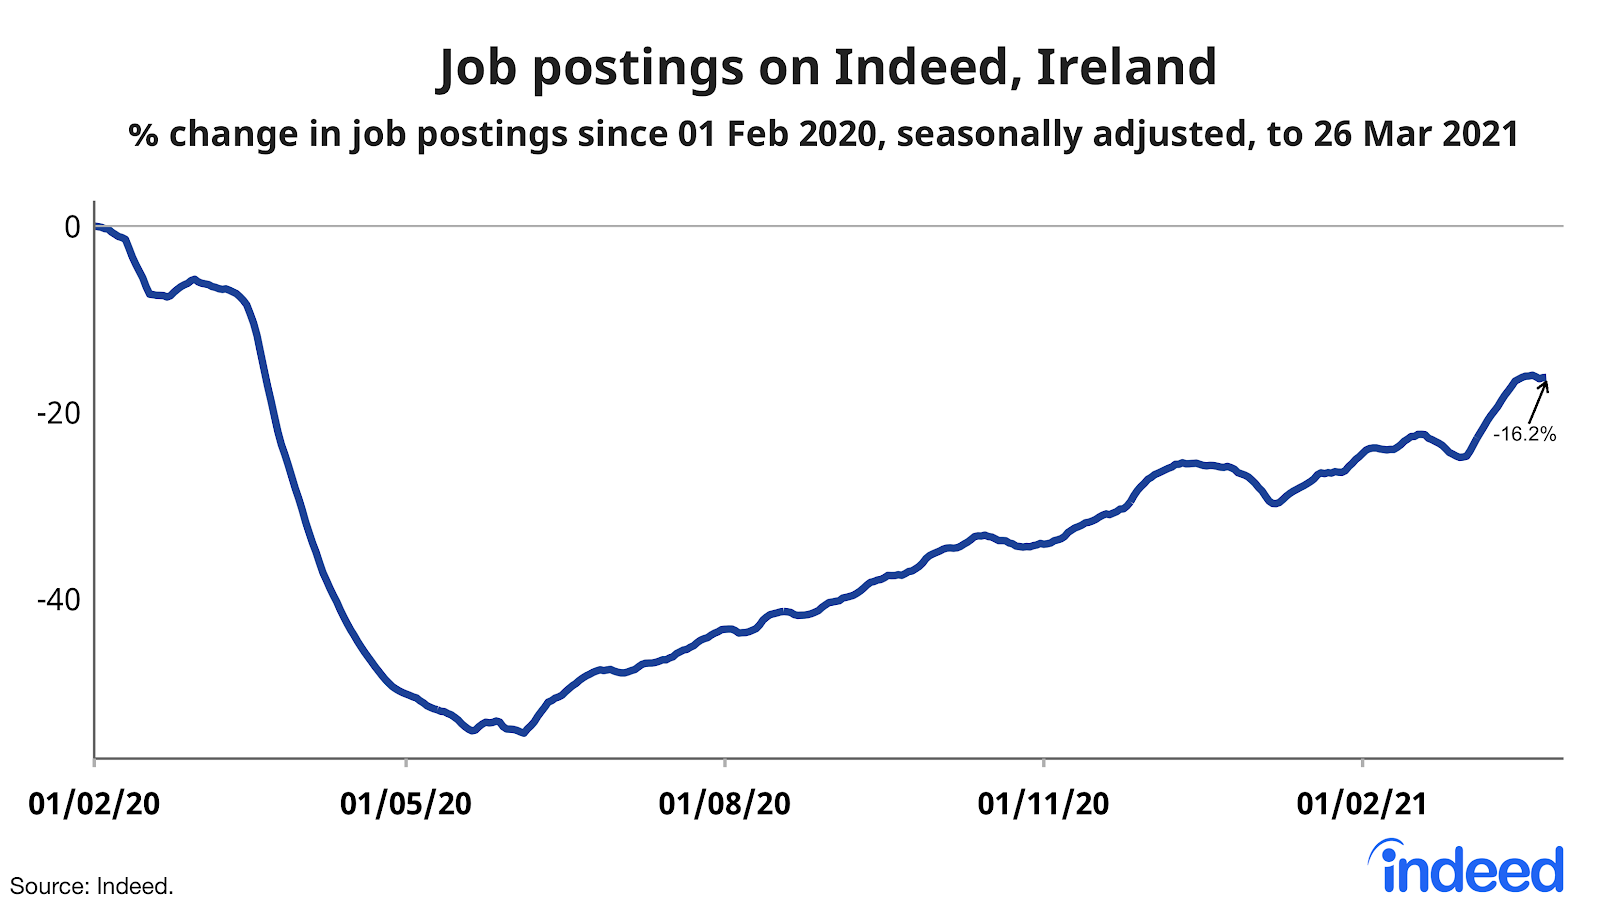 line graph showing job postings on Indeed Ireland